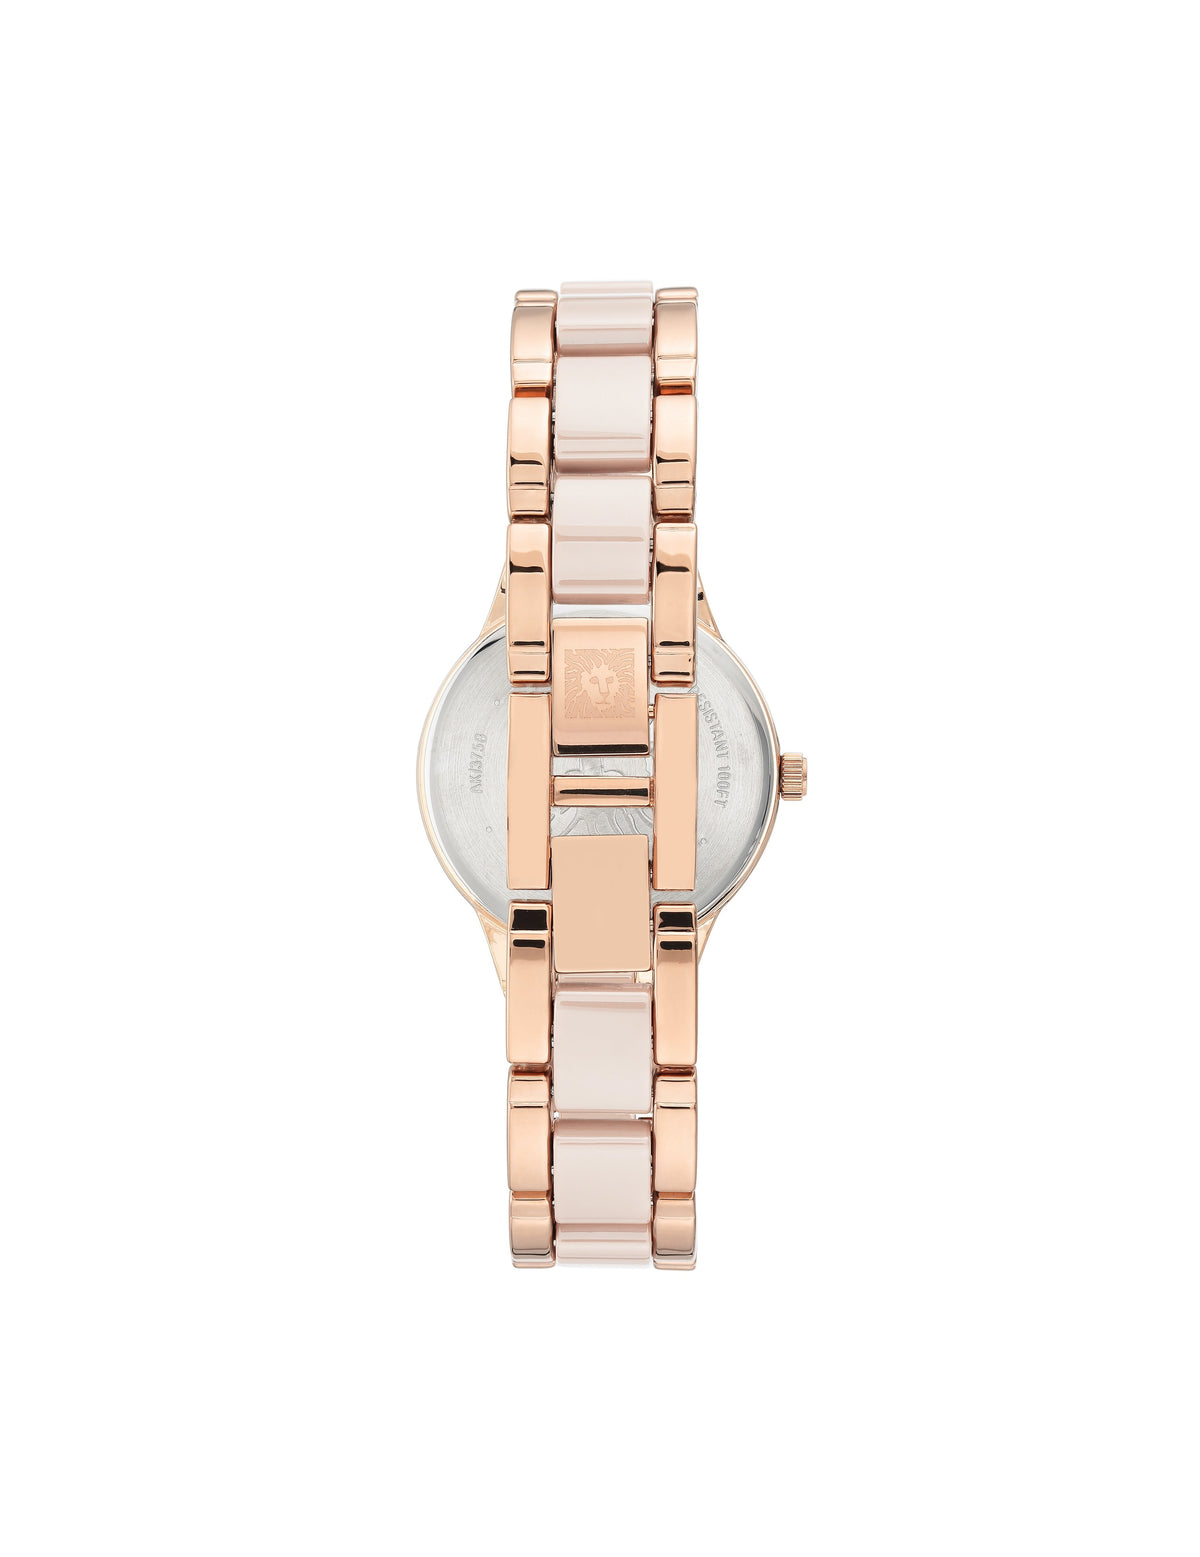 considered solar powered swarovski crystal accented rose gold-tone light pink ceramic bracelet watch